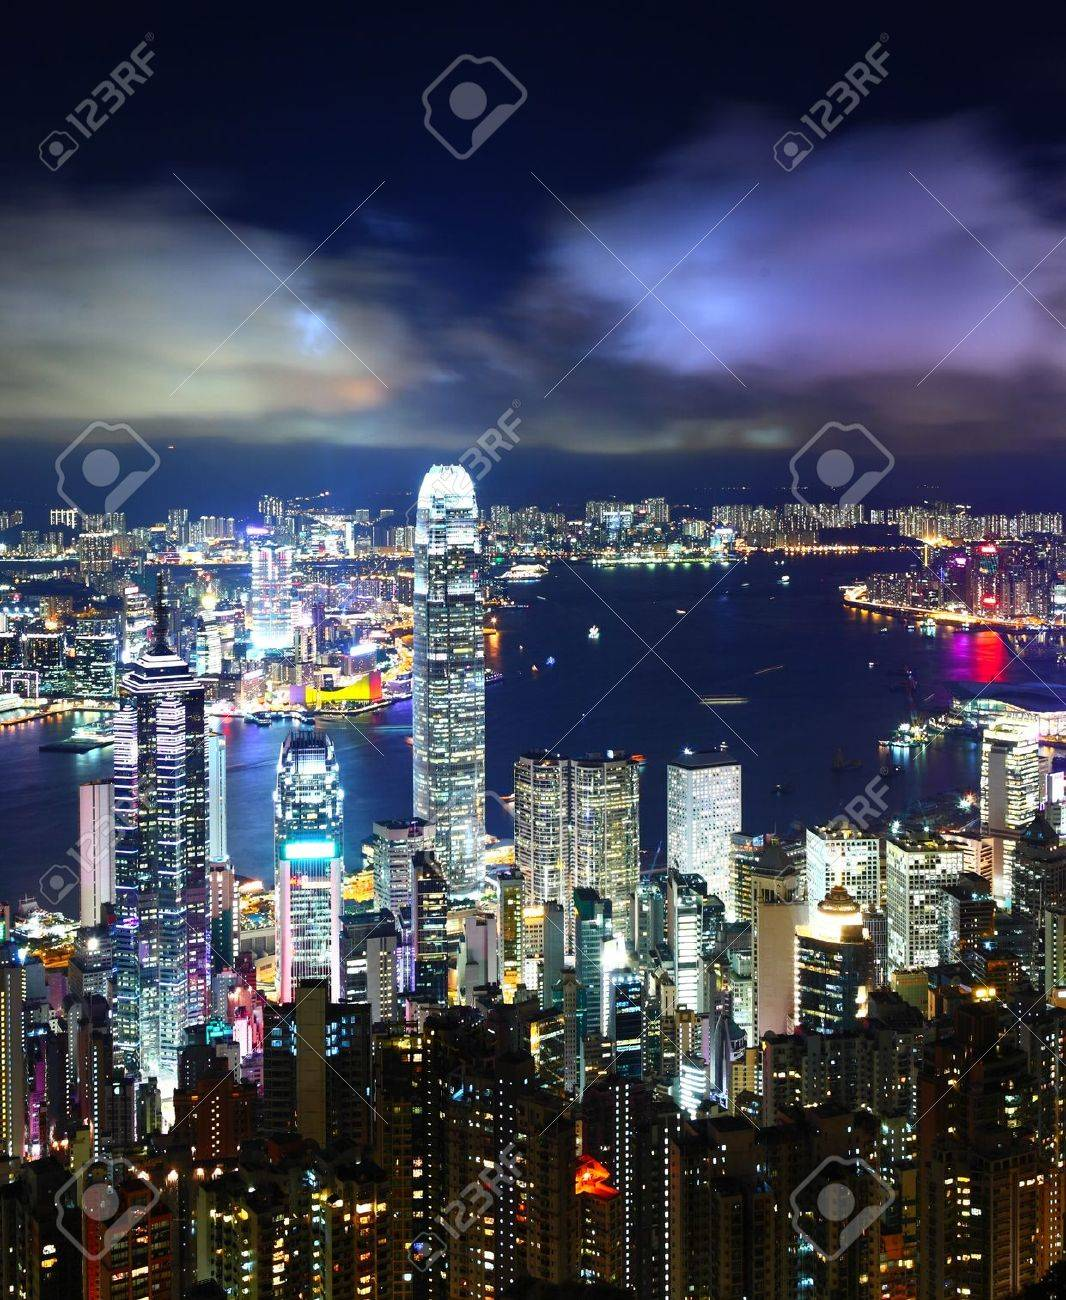 Hong Kong City Night Stock Photo - 15638408